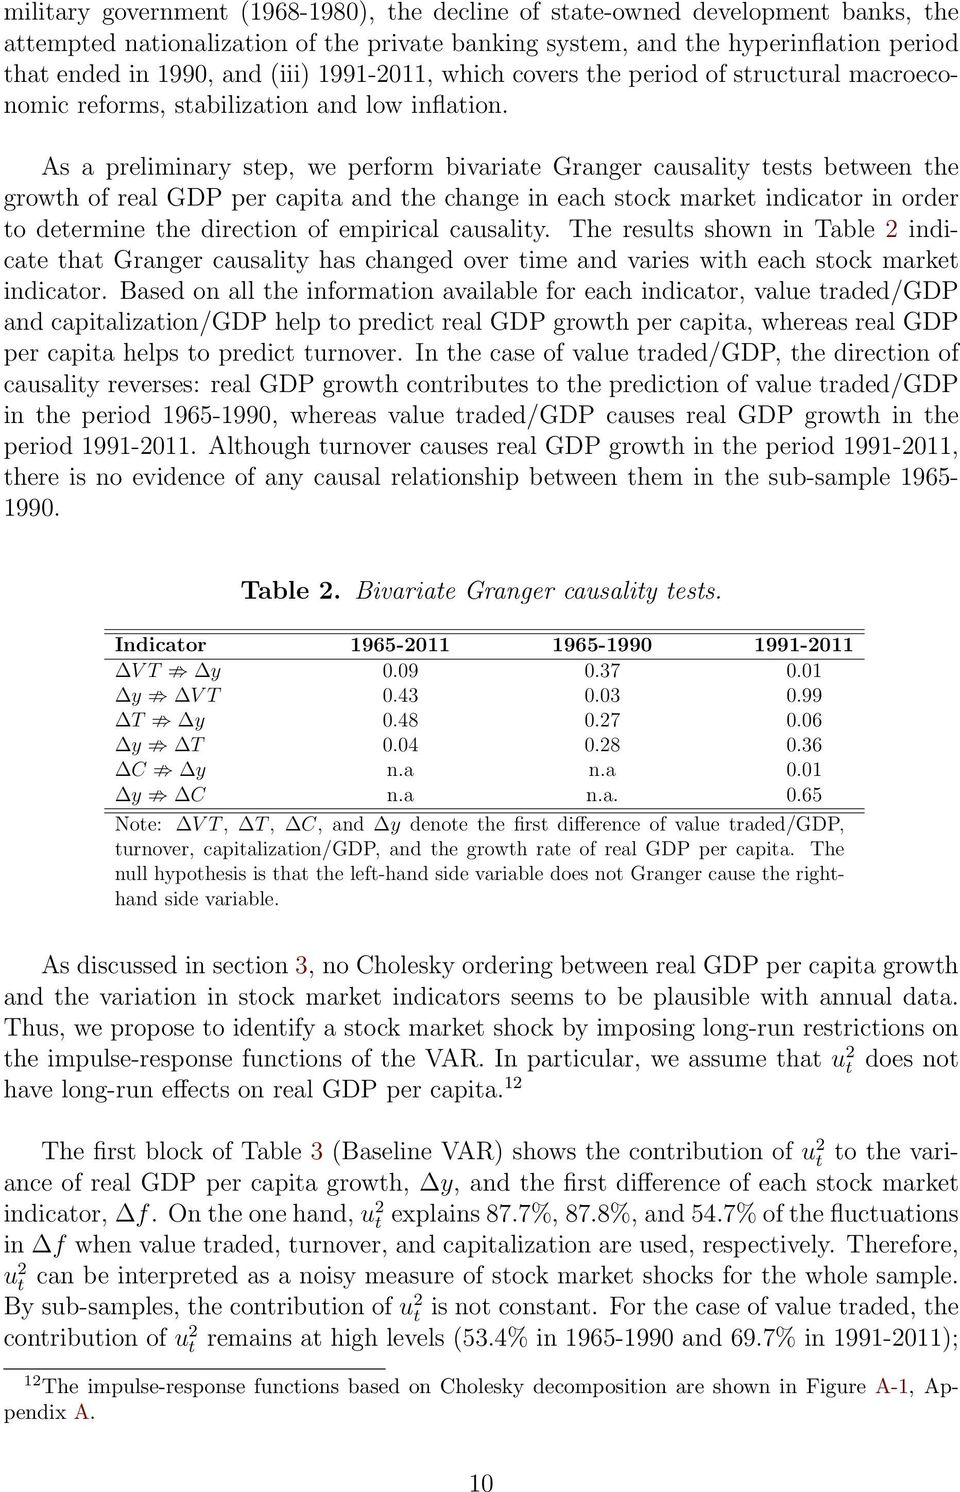 As a preliminary step, we perform bivariate Granger causality tests between the growth of real GDP per capita and the change in each stock market indicator in order to determine the direction of